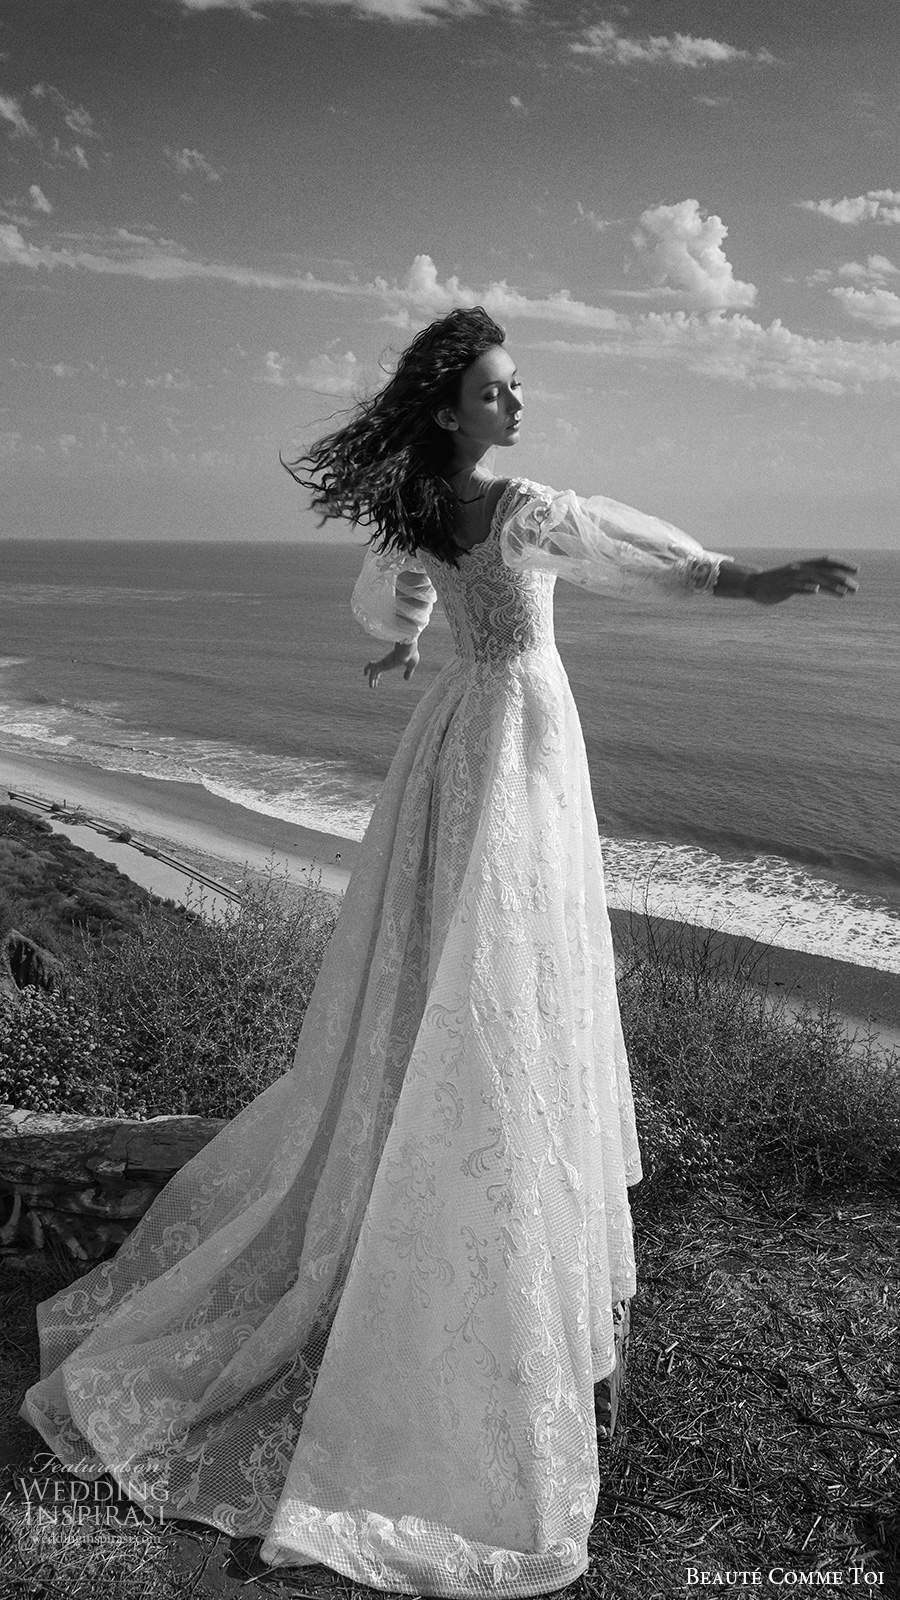 beaute comme toi f2020 bridal illusion long sleeves off shoulder sweetheart neckline fully embellished lace a line ball gown wedding dress chapel train (1) bv